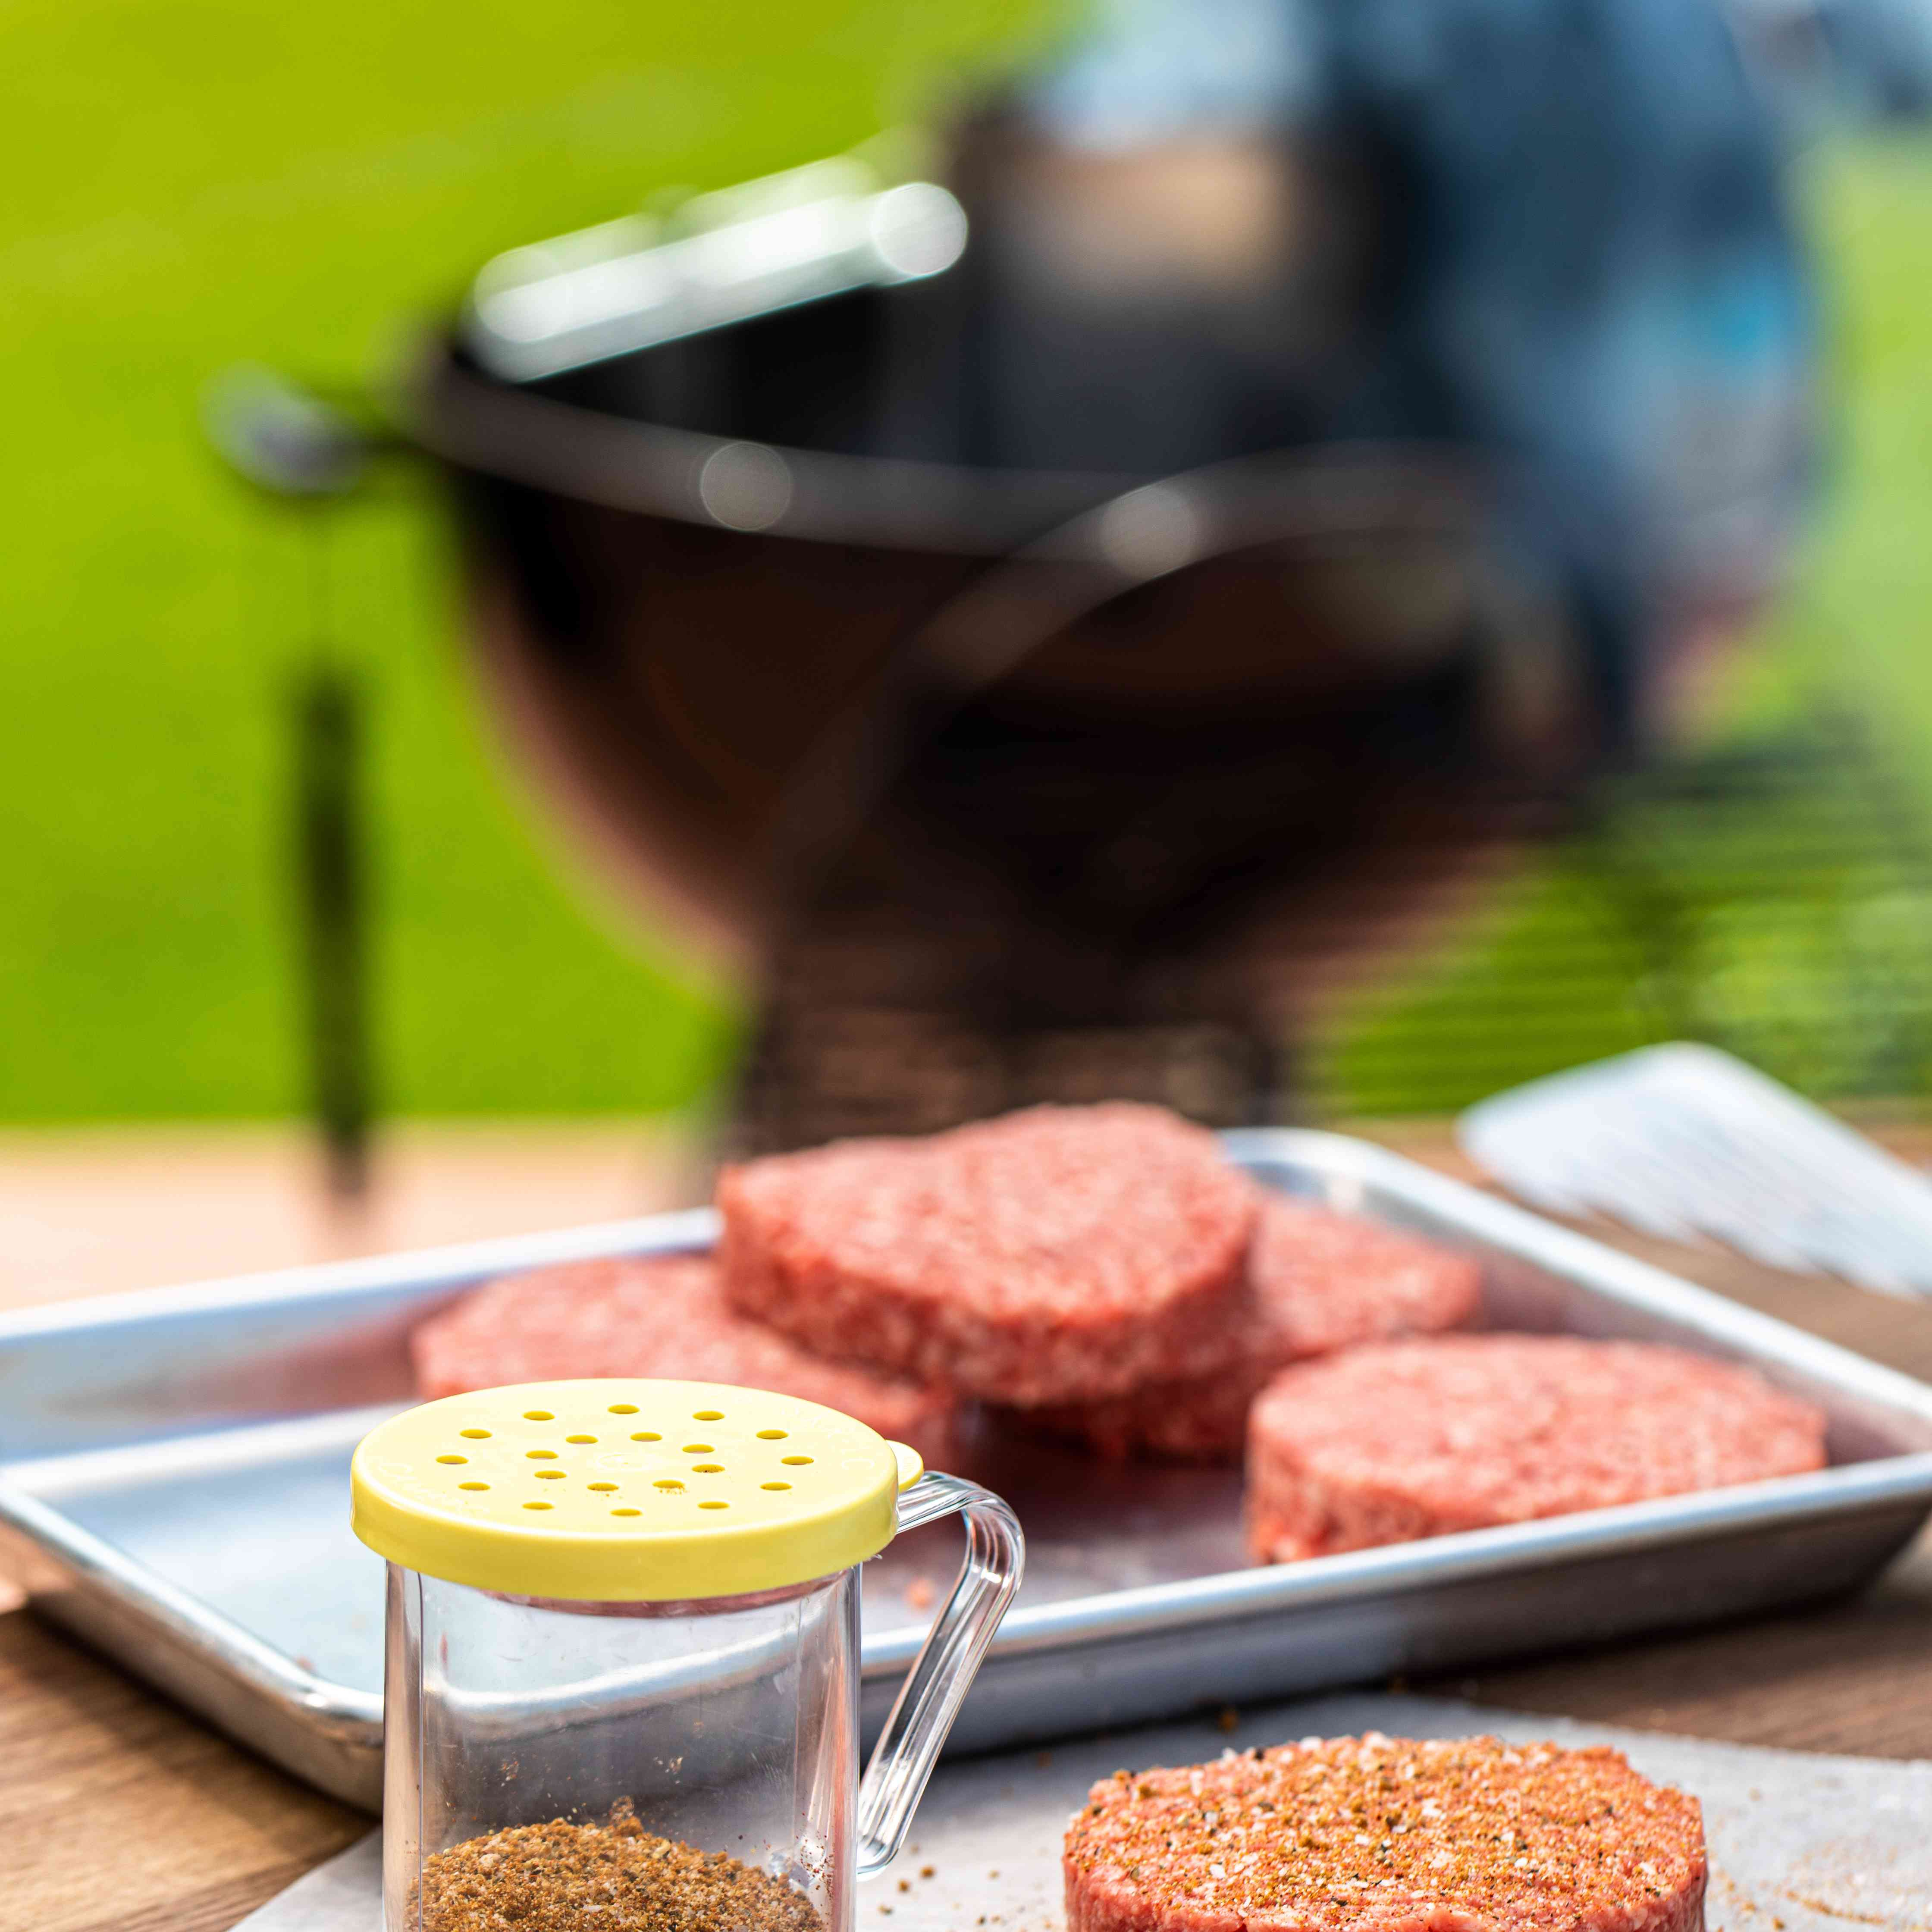 Hamburger patties set next to a jar of the best hamburger seasoning and a grill in the background.